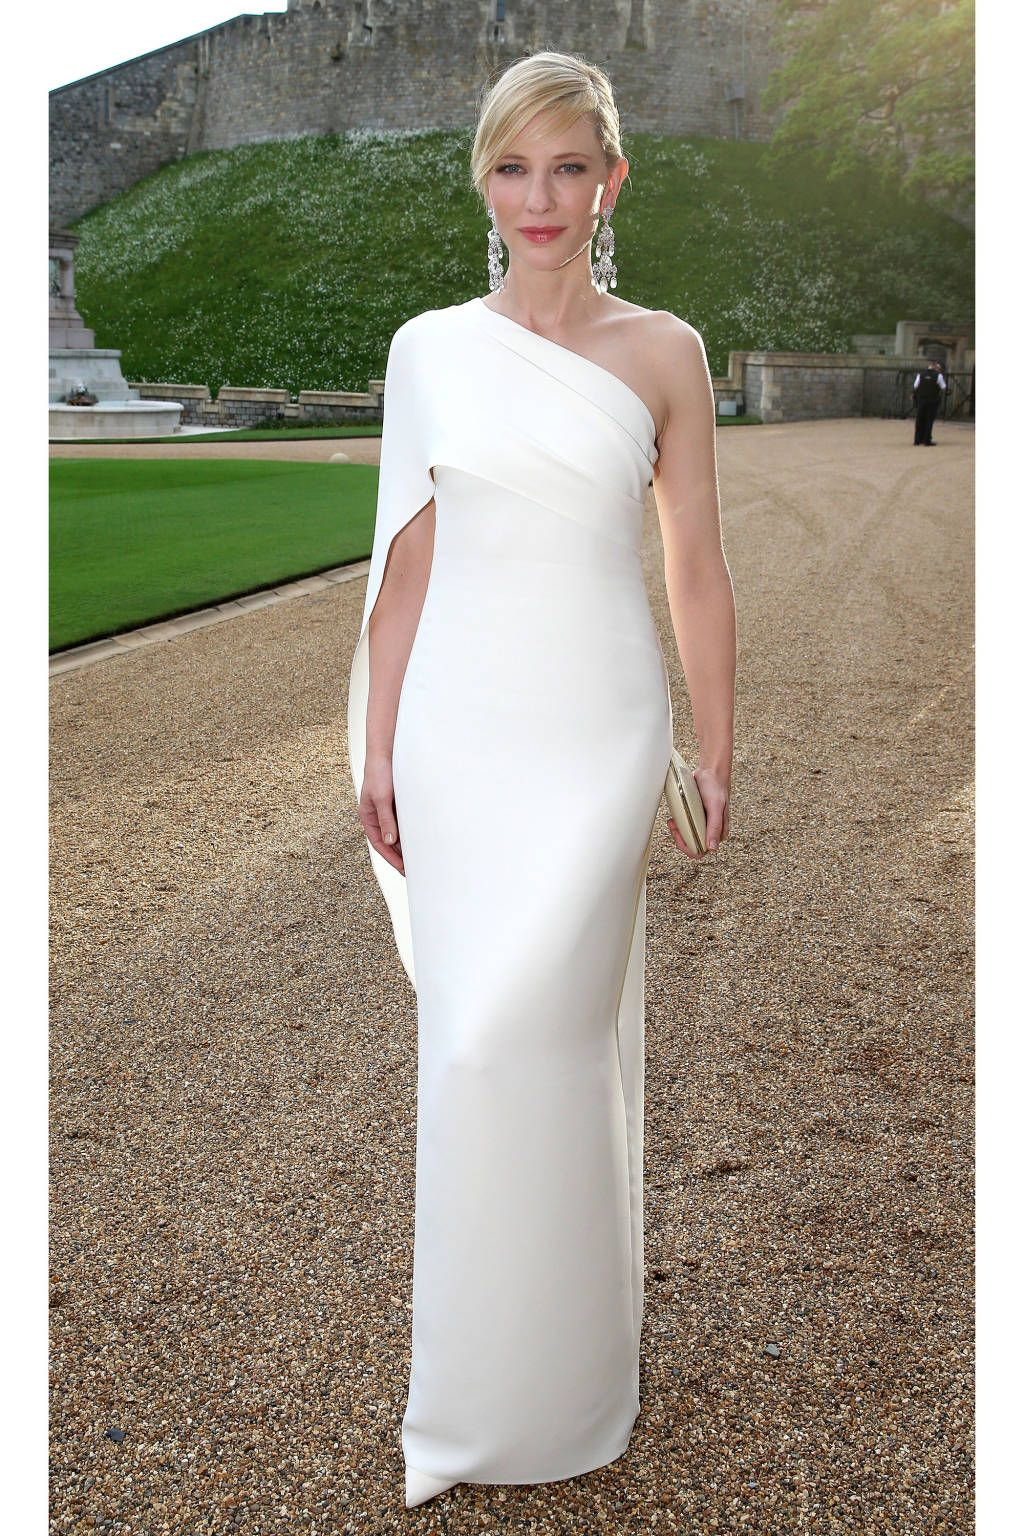 Ralph Lauren Royal Marsden Dinner At Windsor Castle - Cate Blanchett in Ralph Lauren.